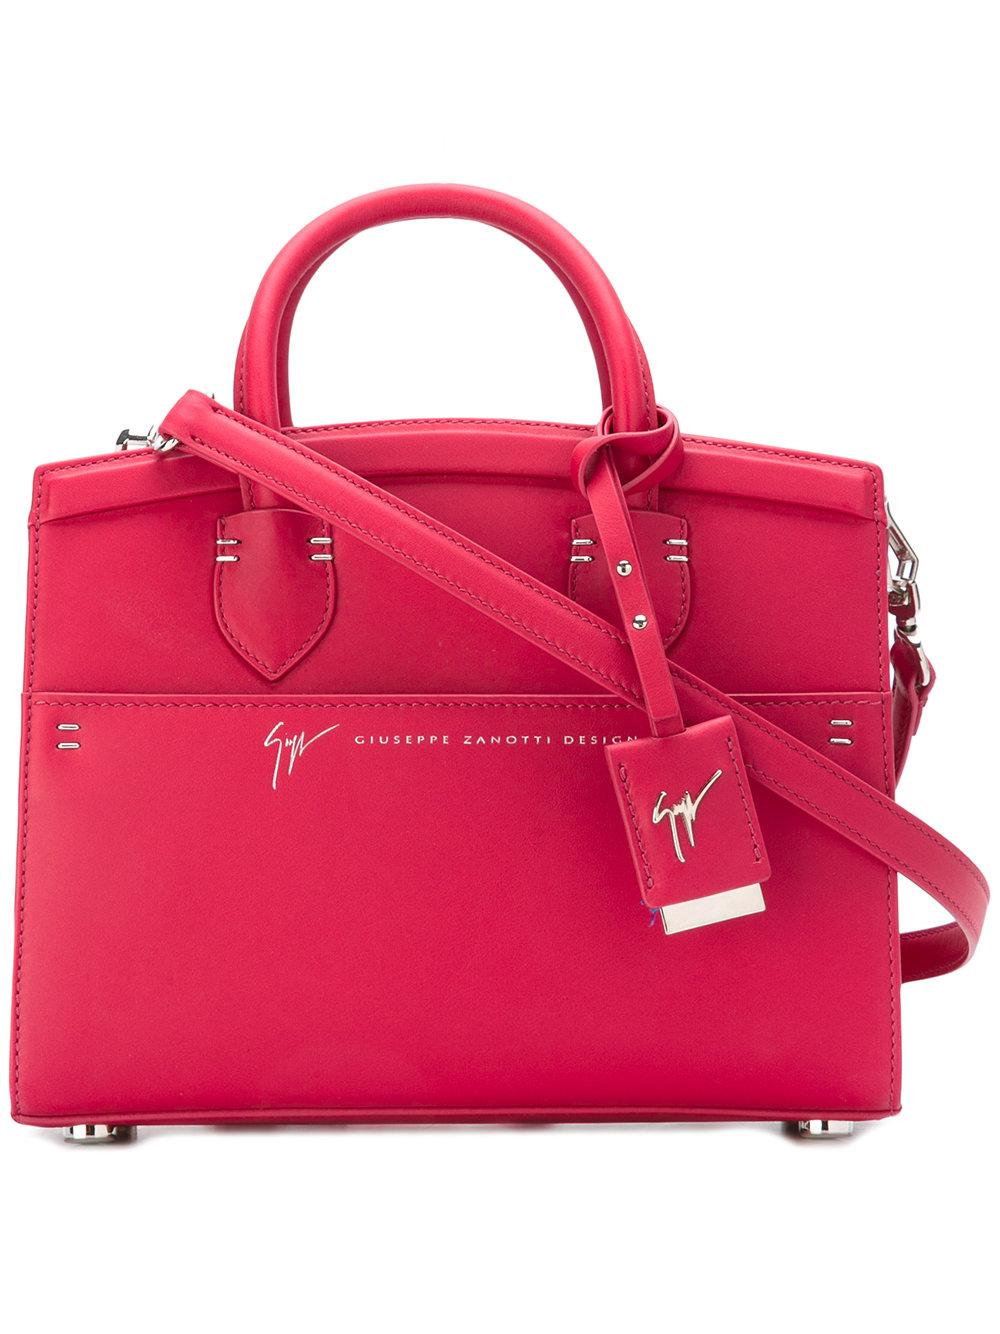 14ef68a1f6b Giuseppe Zanotti Angelina Tote in Pink - Lyst